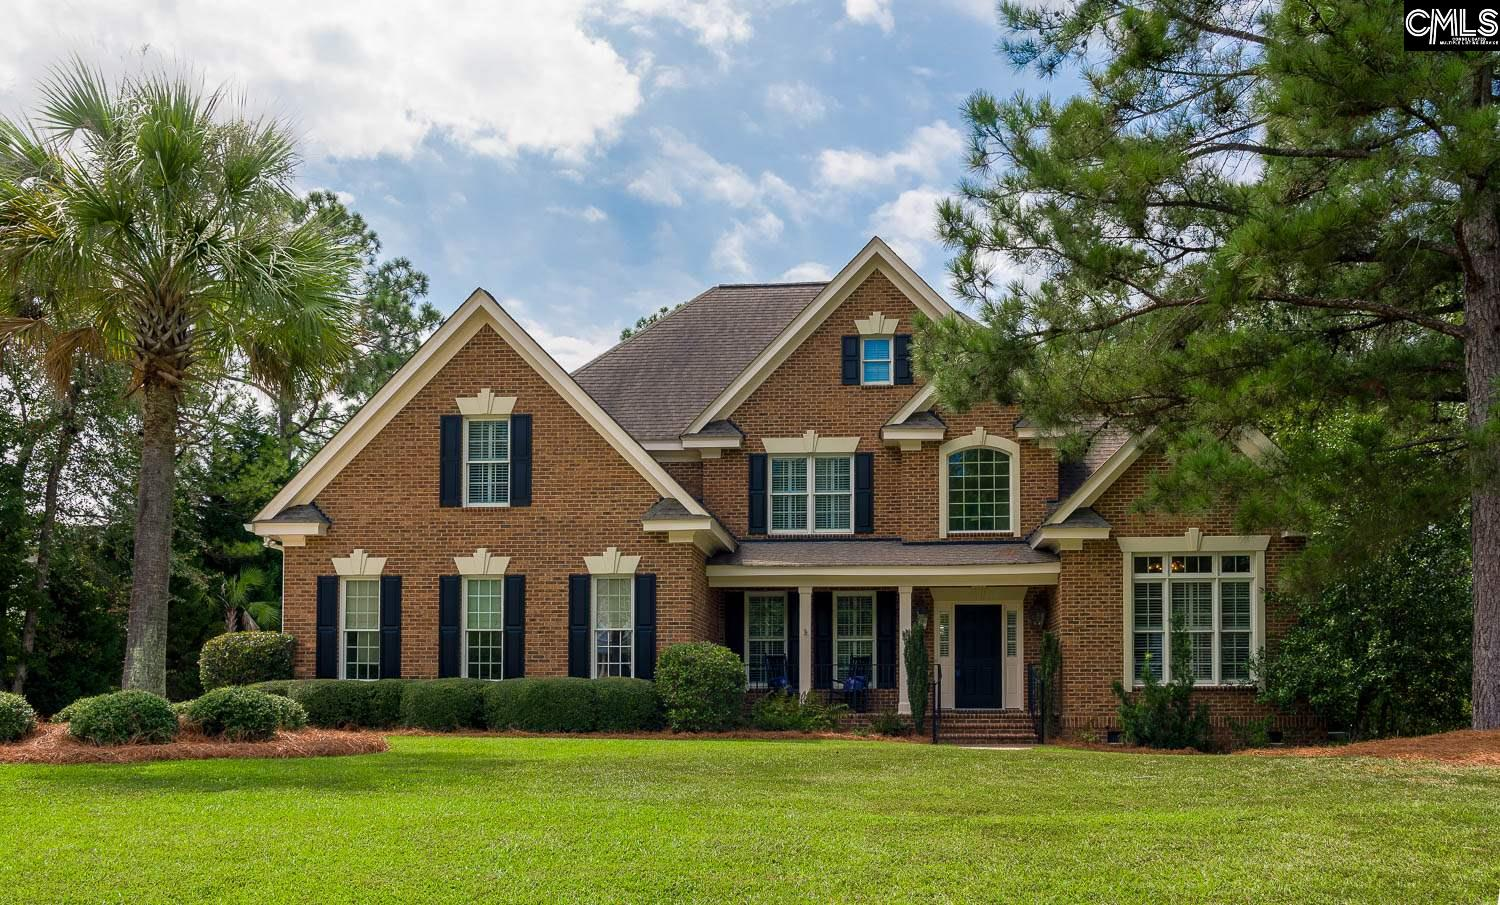 37 Foot Point Columbia, SC 29209